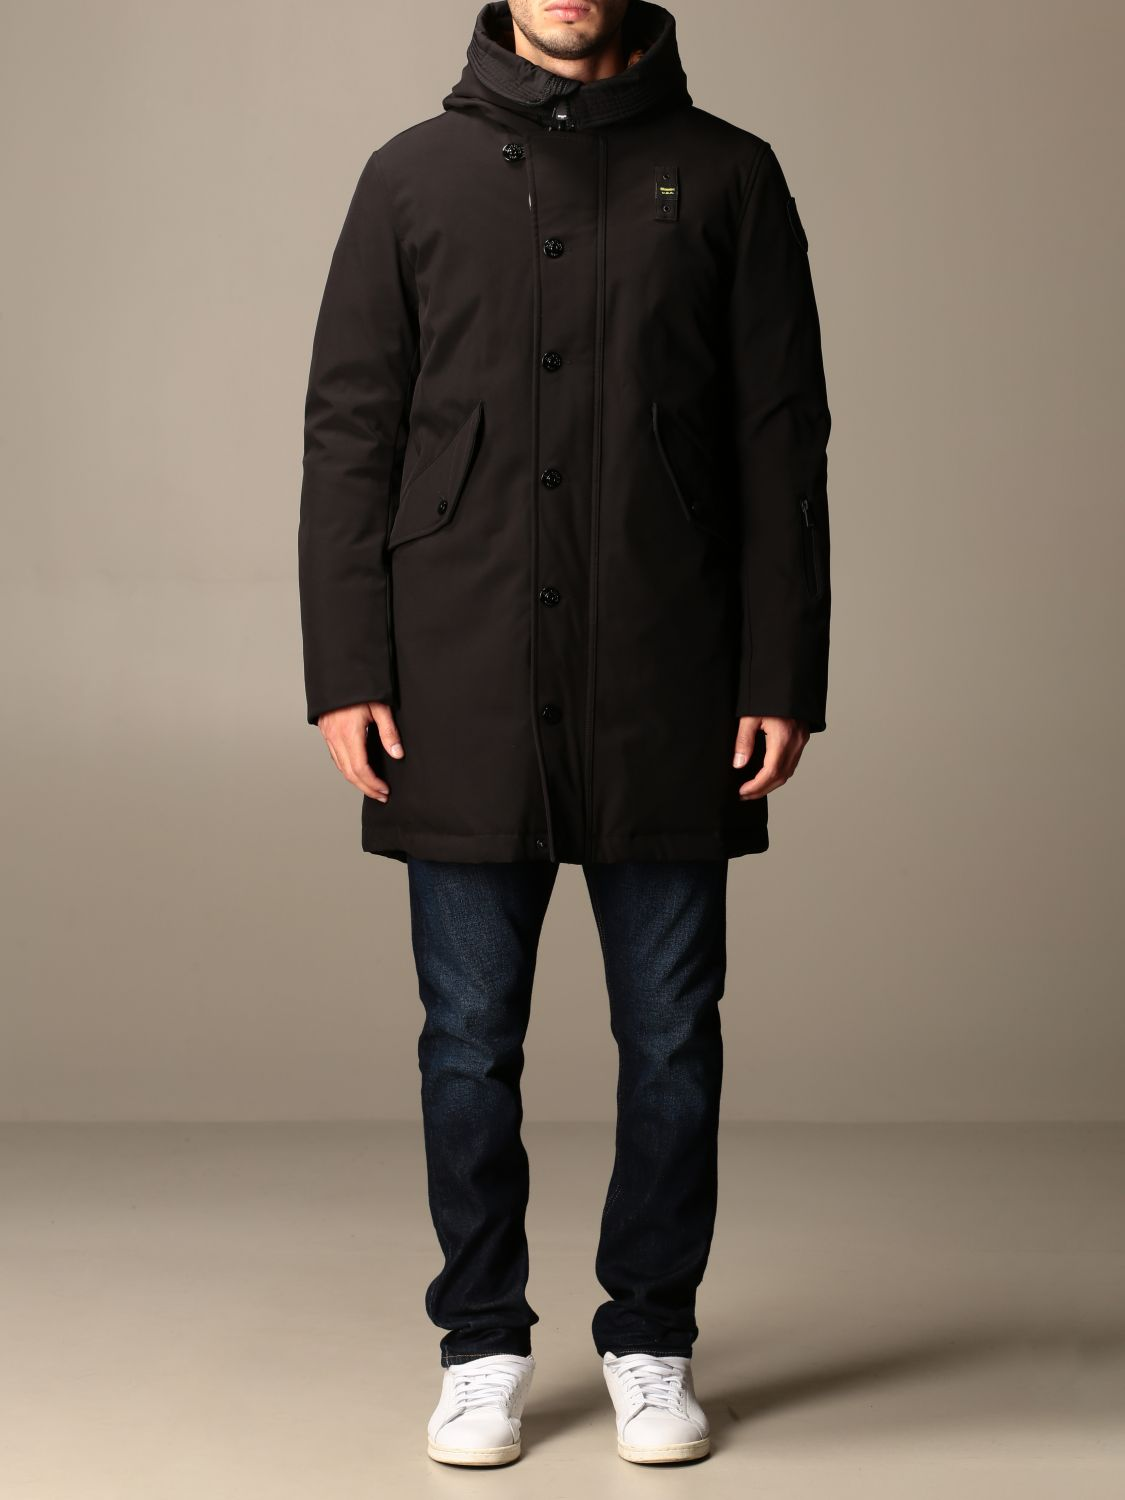 Jacket Blauer: Coat men Blauer black 1